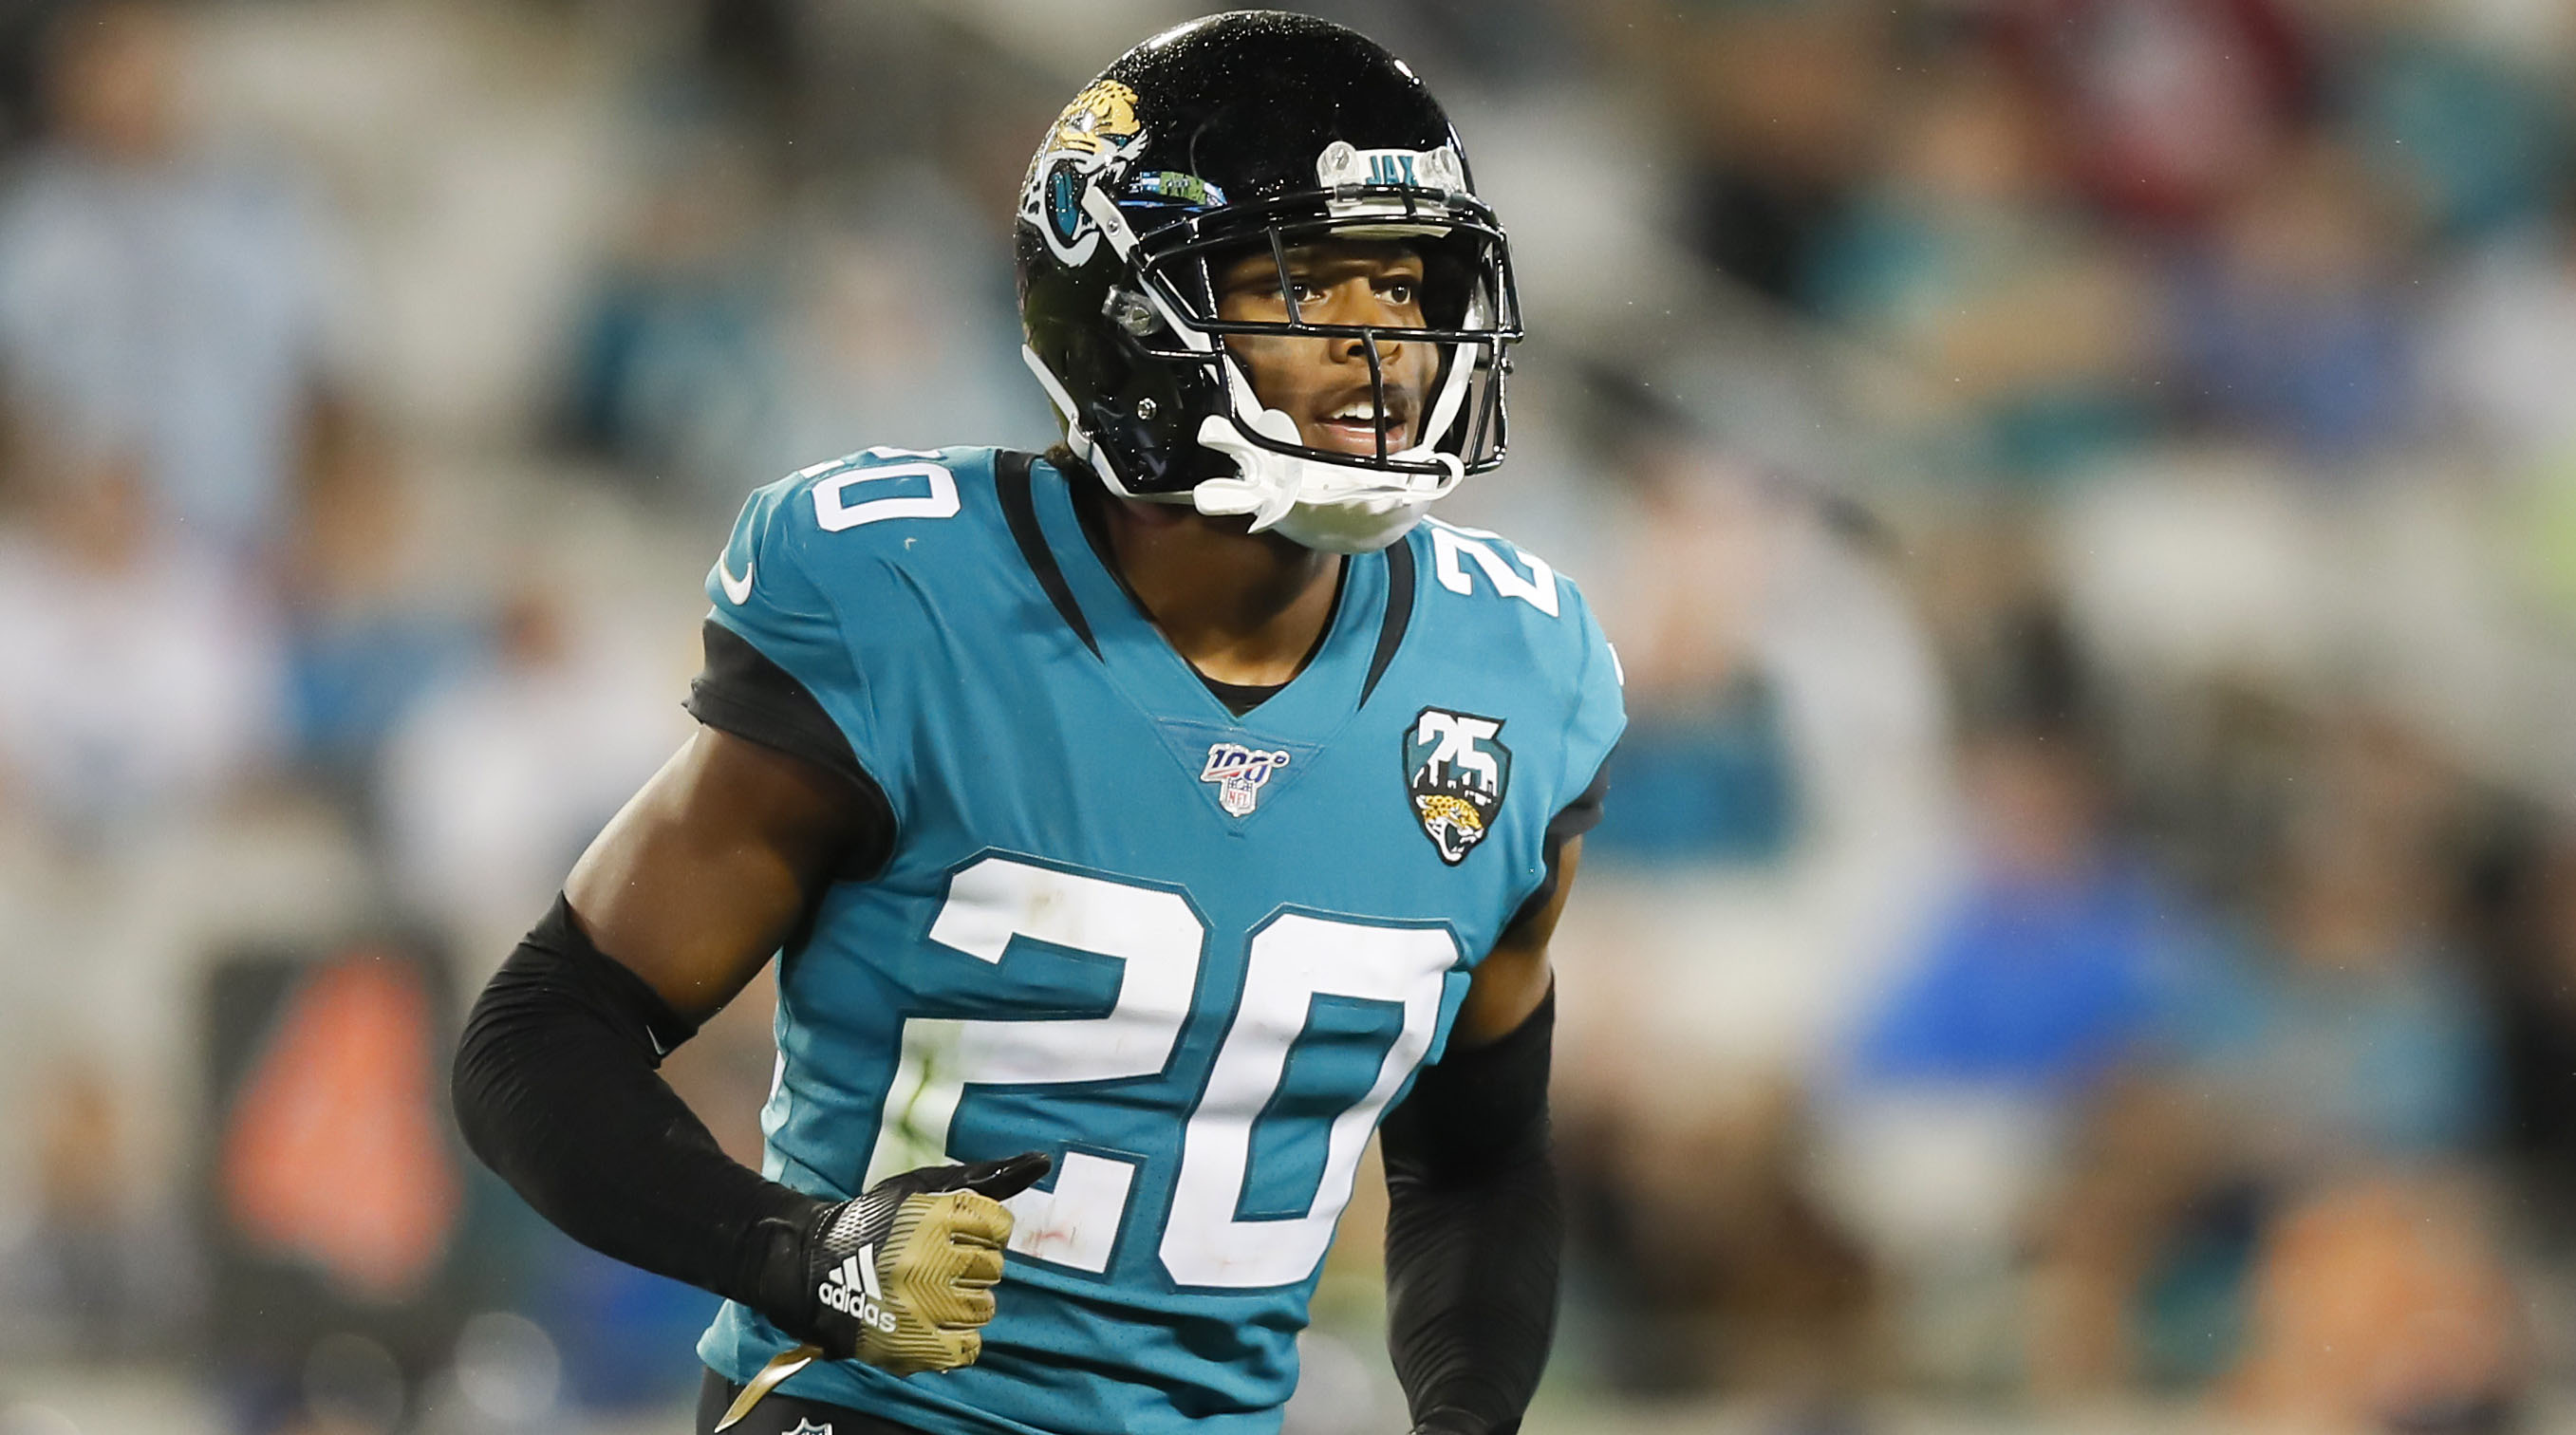 Jalen Ramsey calls in sick, won't practice with Jaguars